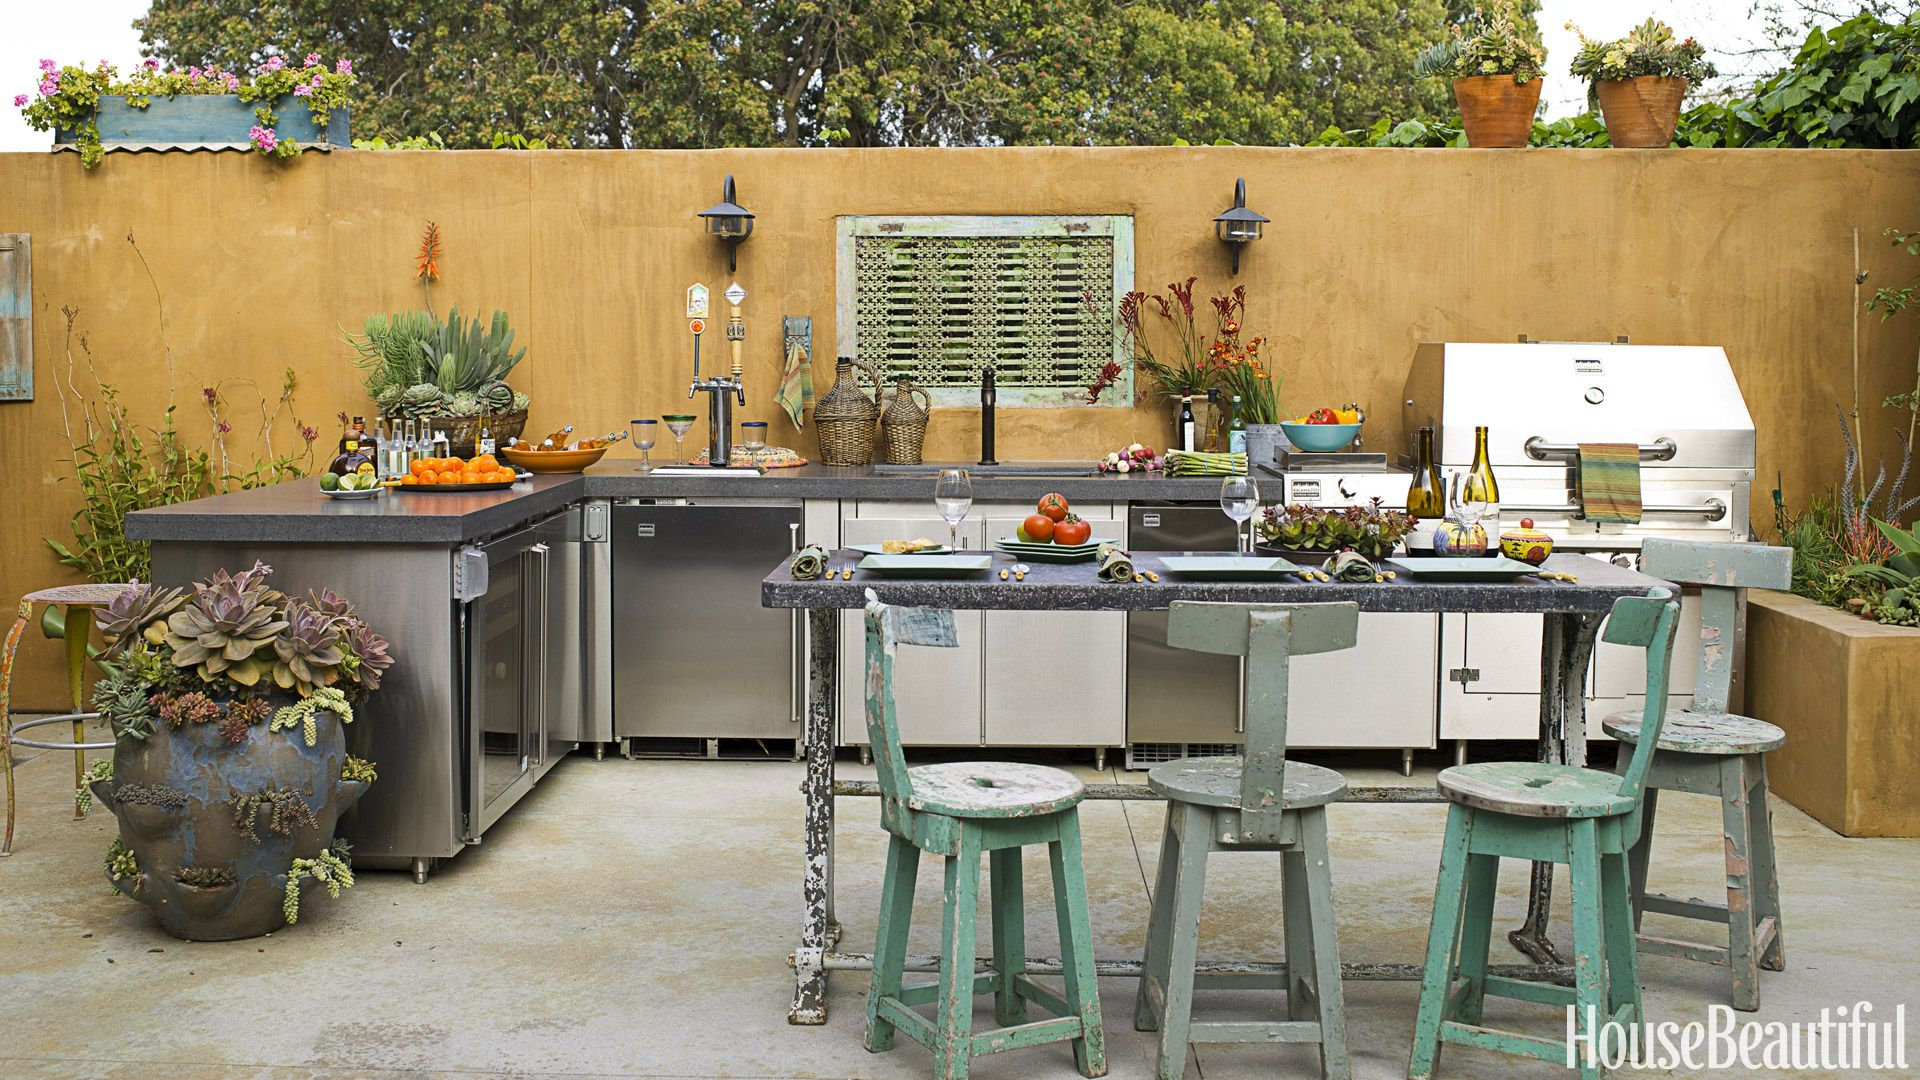 17 Best Images About Outdoor Kitchen On Pinterest  Uxui Designer Mesmerizing Outdoor Kitchen Pictures Design Ideas Decorating Inspiration